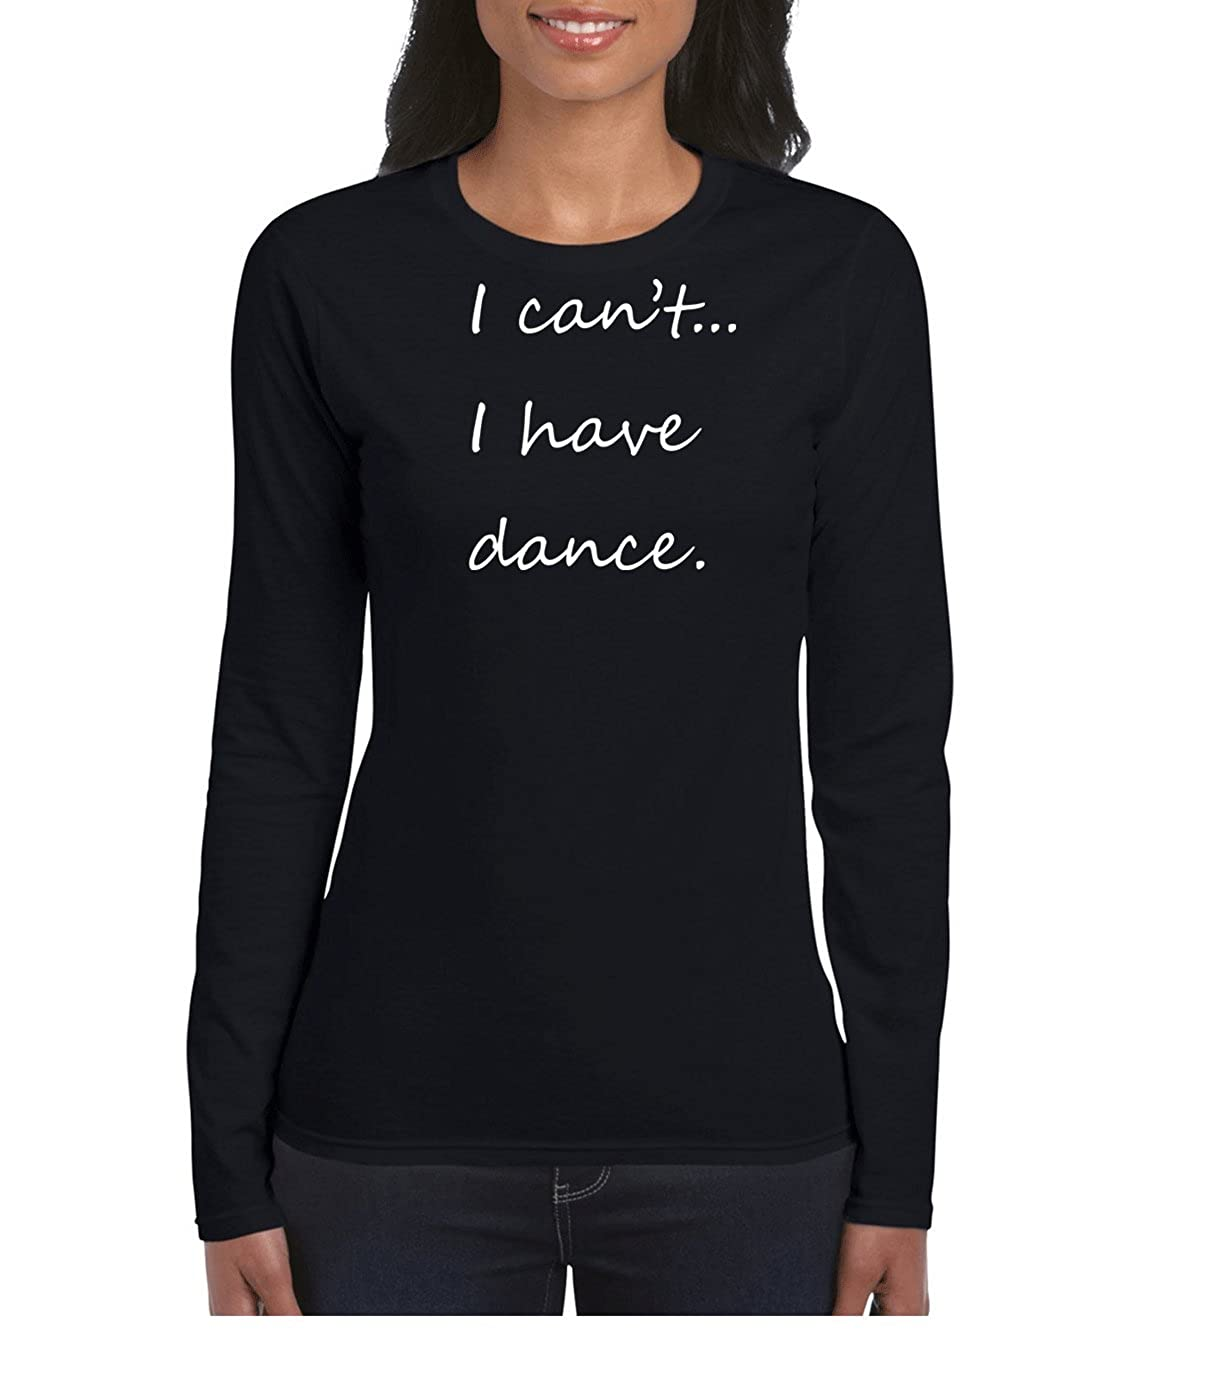 Amazon.com: AW Fashions I Cant I Have Dance - Gift Shirt Womens Long Sleeve Tee: Clothing